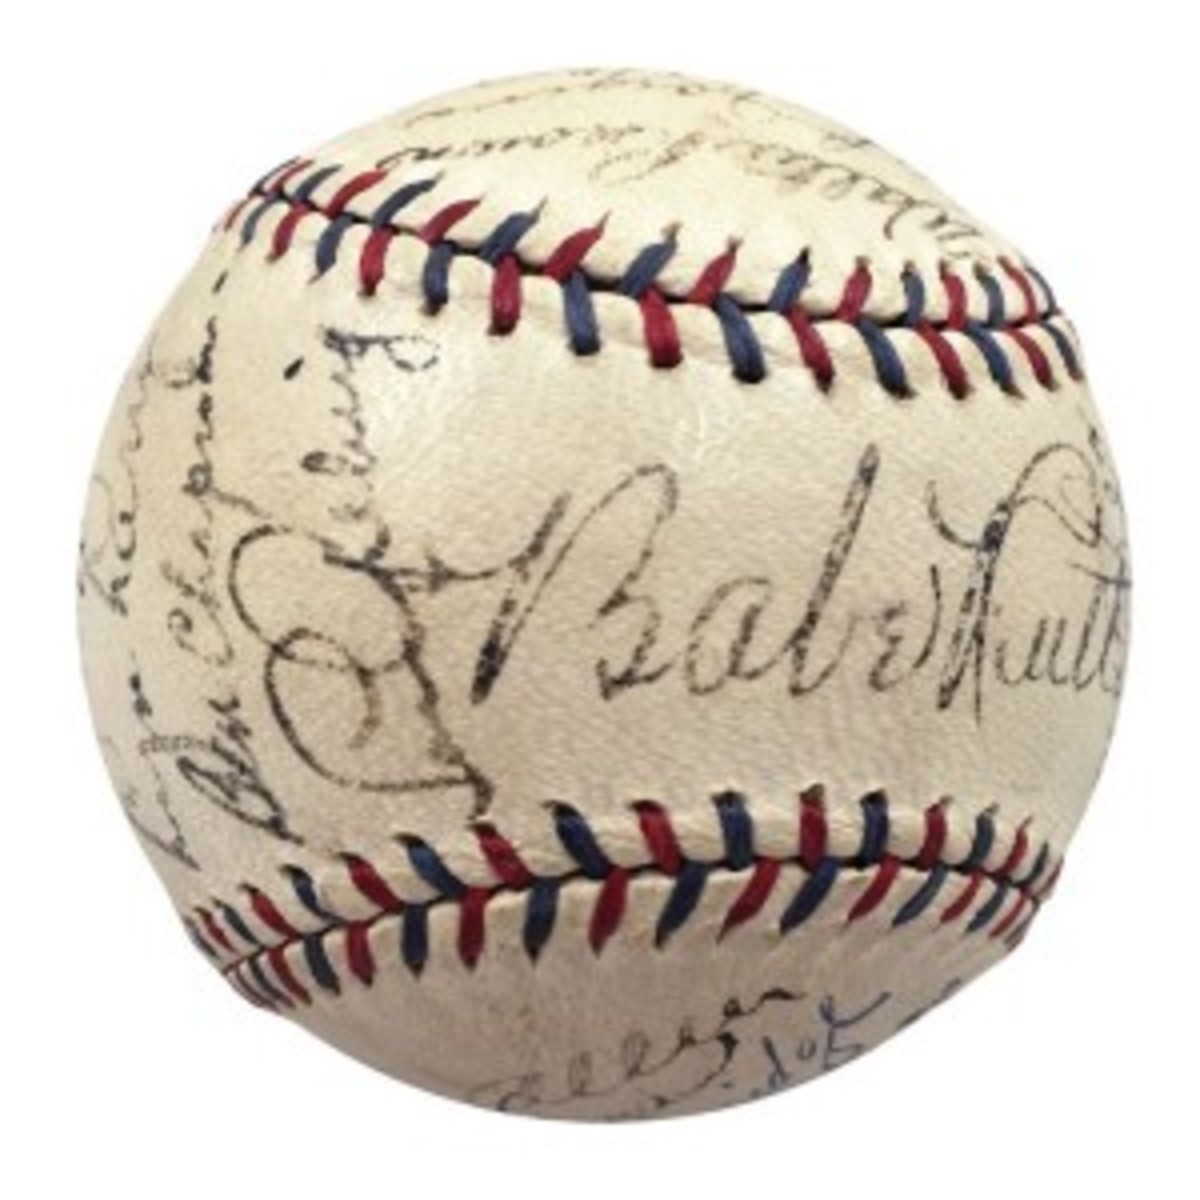 Baseball signed by 23 of the 1932 New York Yankees, including Babe Ruth, Lou Gehrig and other Hall of Famers, $115,242. Grey Flannel Auctions image